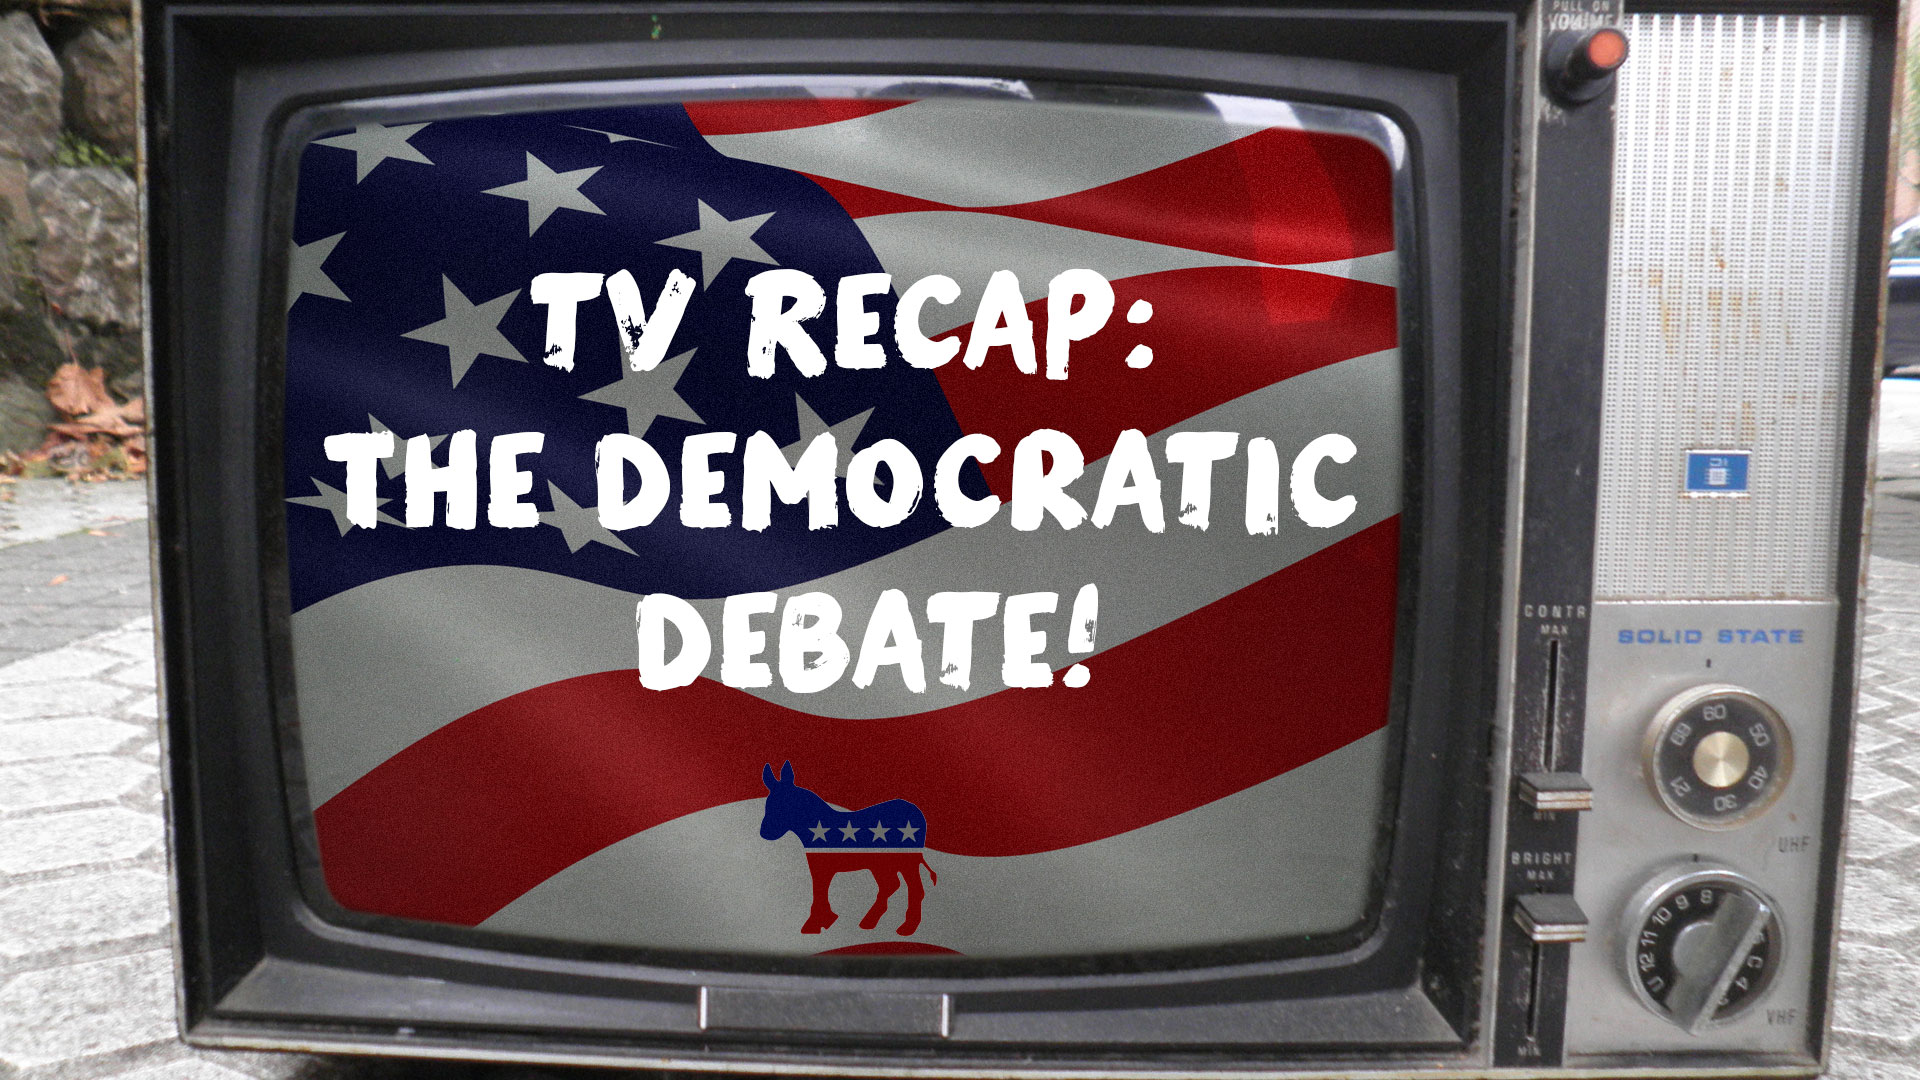 TV Recap: DemDebate (Pilot)